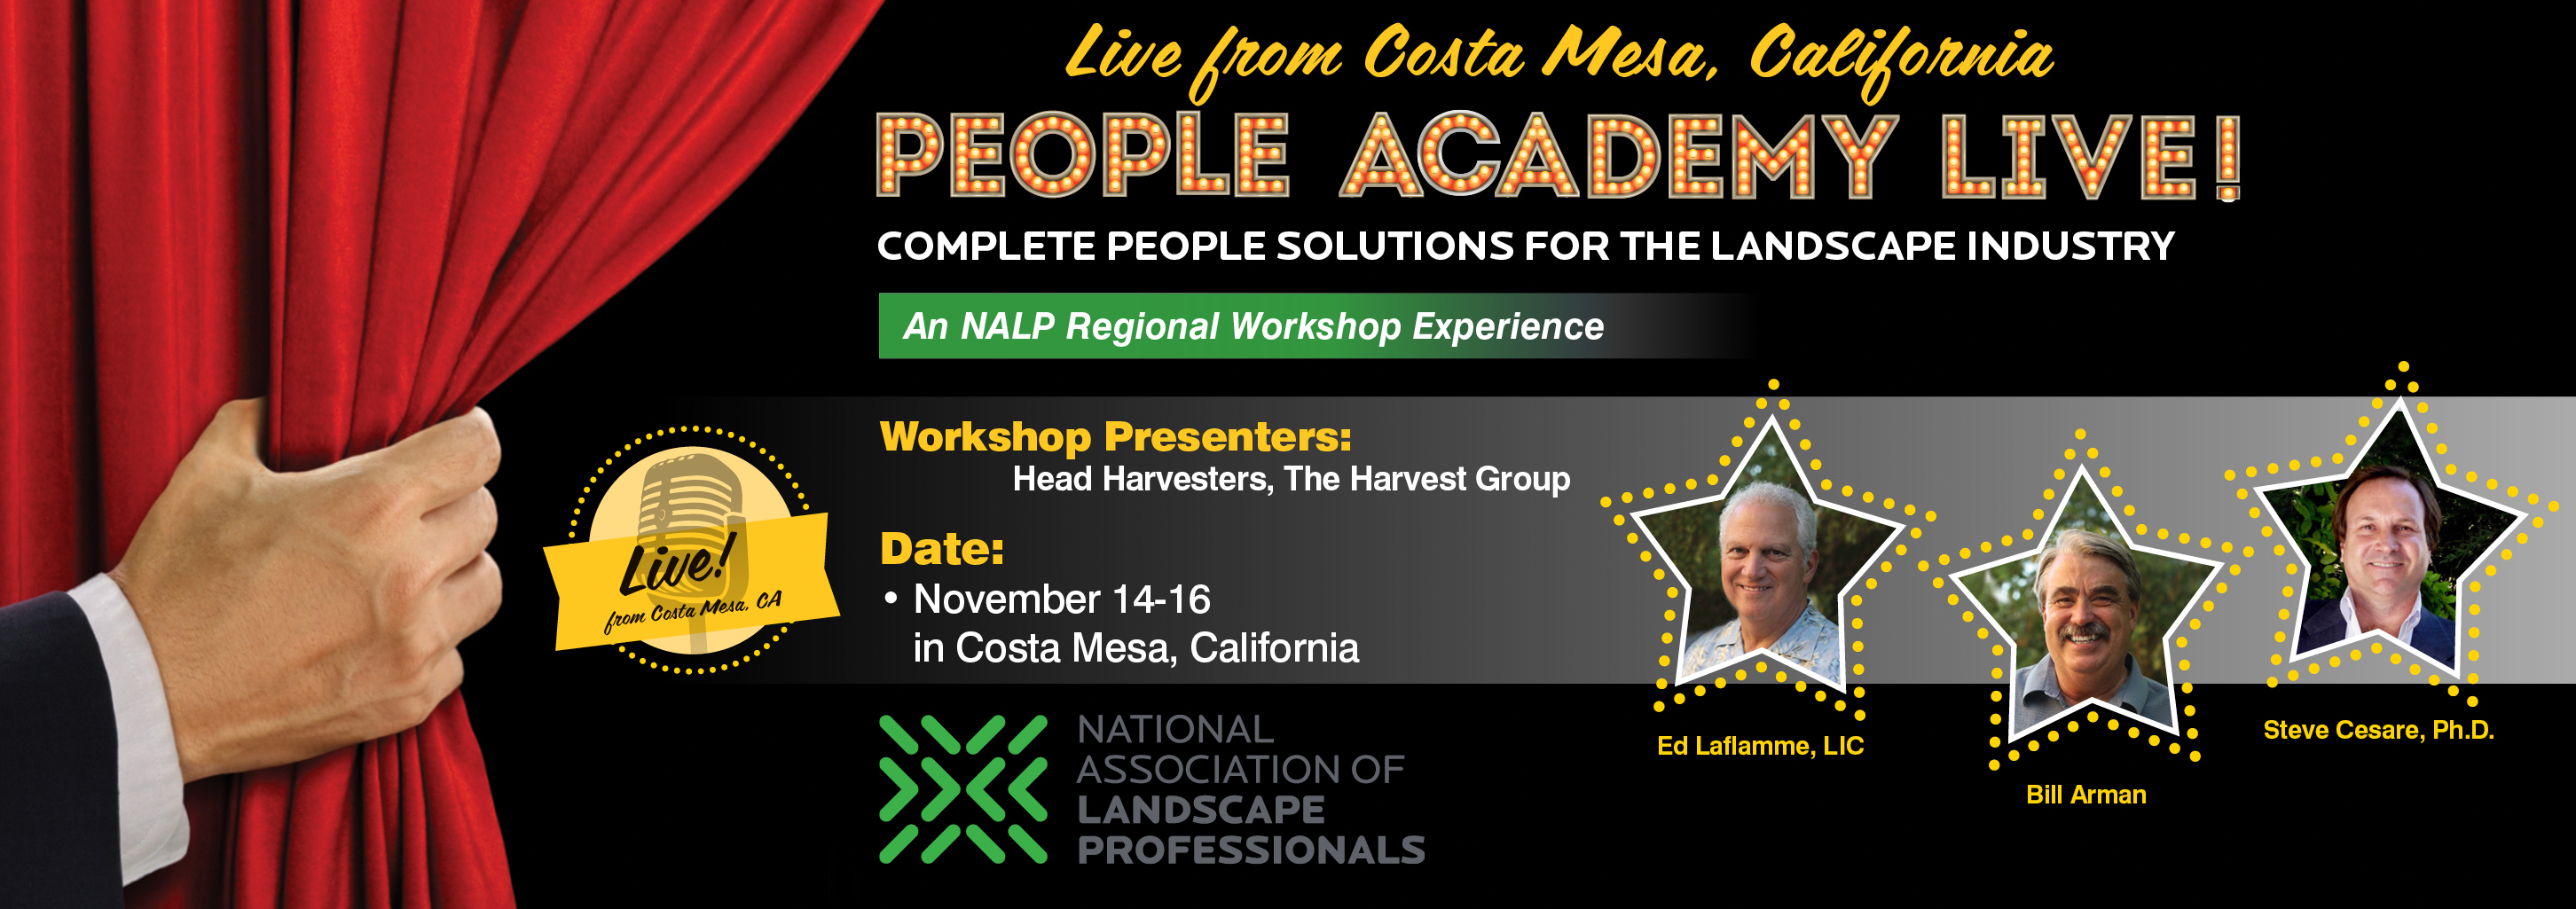 NALP Peoples Academy Live